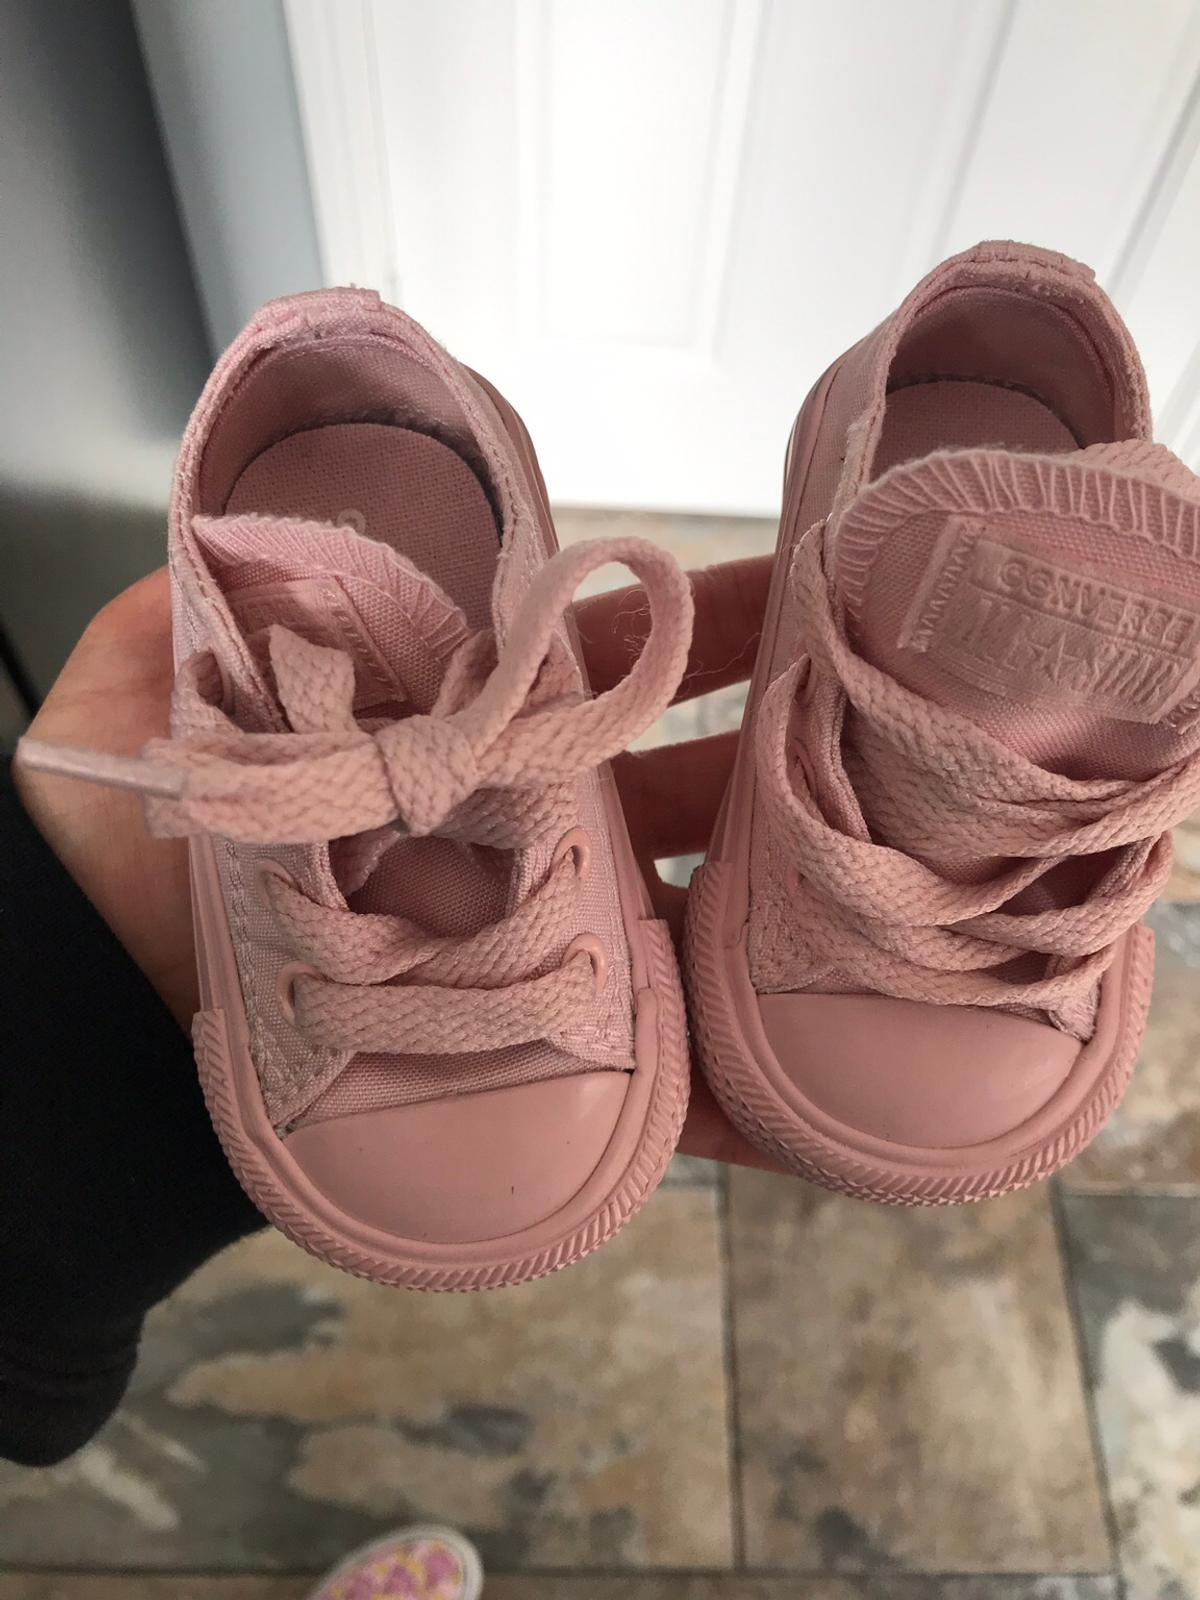 bec5a0b2e06b2e Blush pink baby Converse size 3 in NE61 Ashington for £12.00 for ...